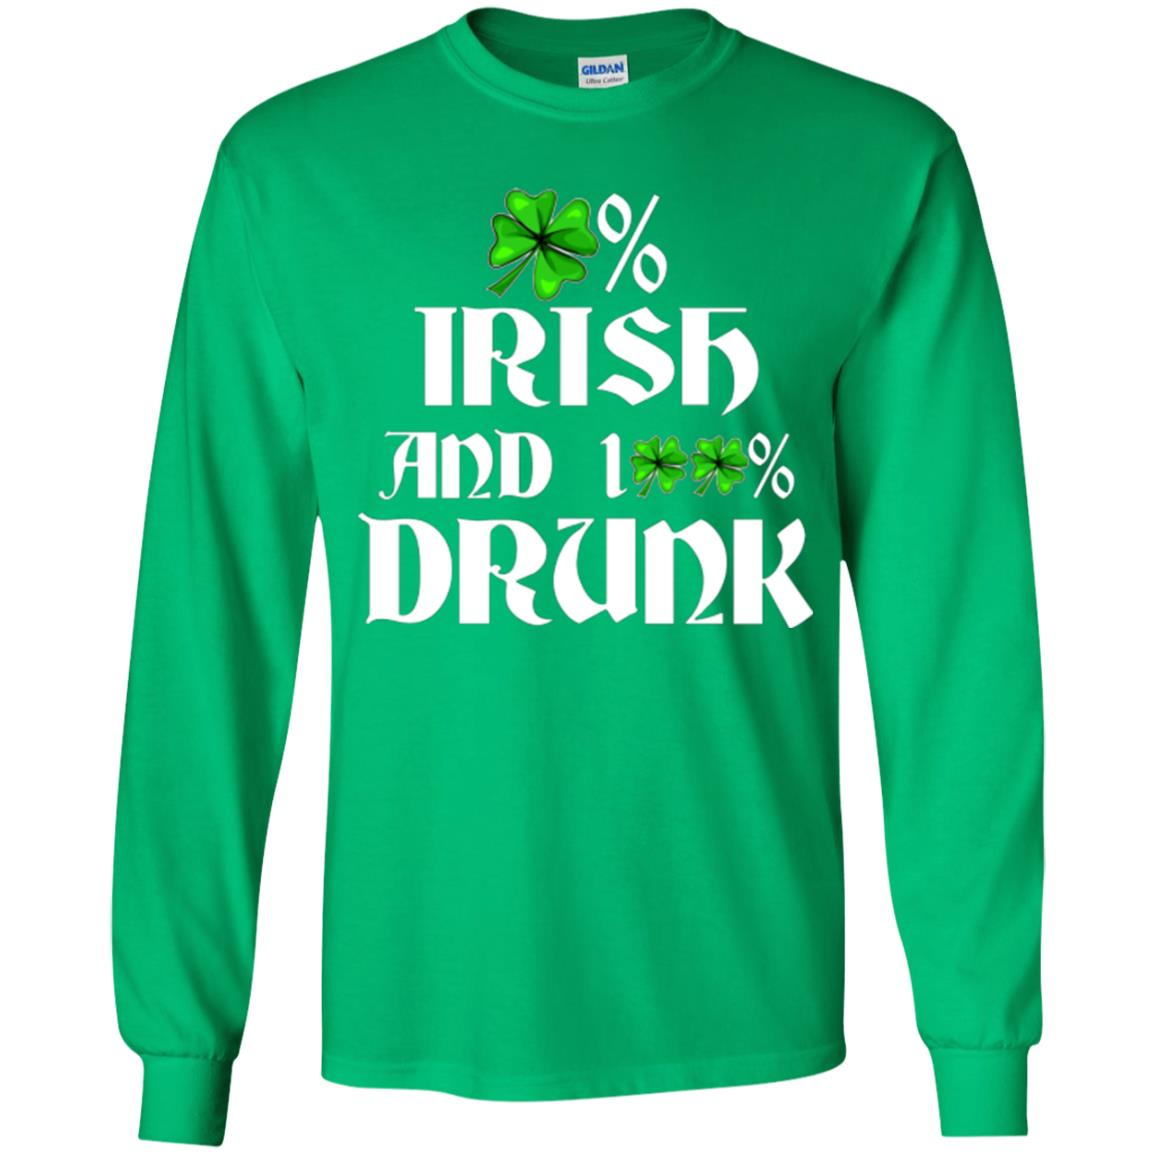 0 Irish shirts 100 Drunk St.Patricks Day Lover Gifts 99promocode